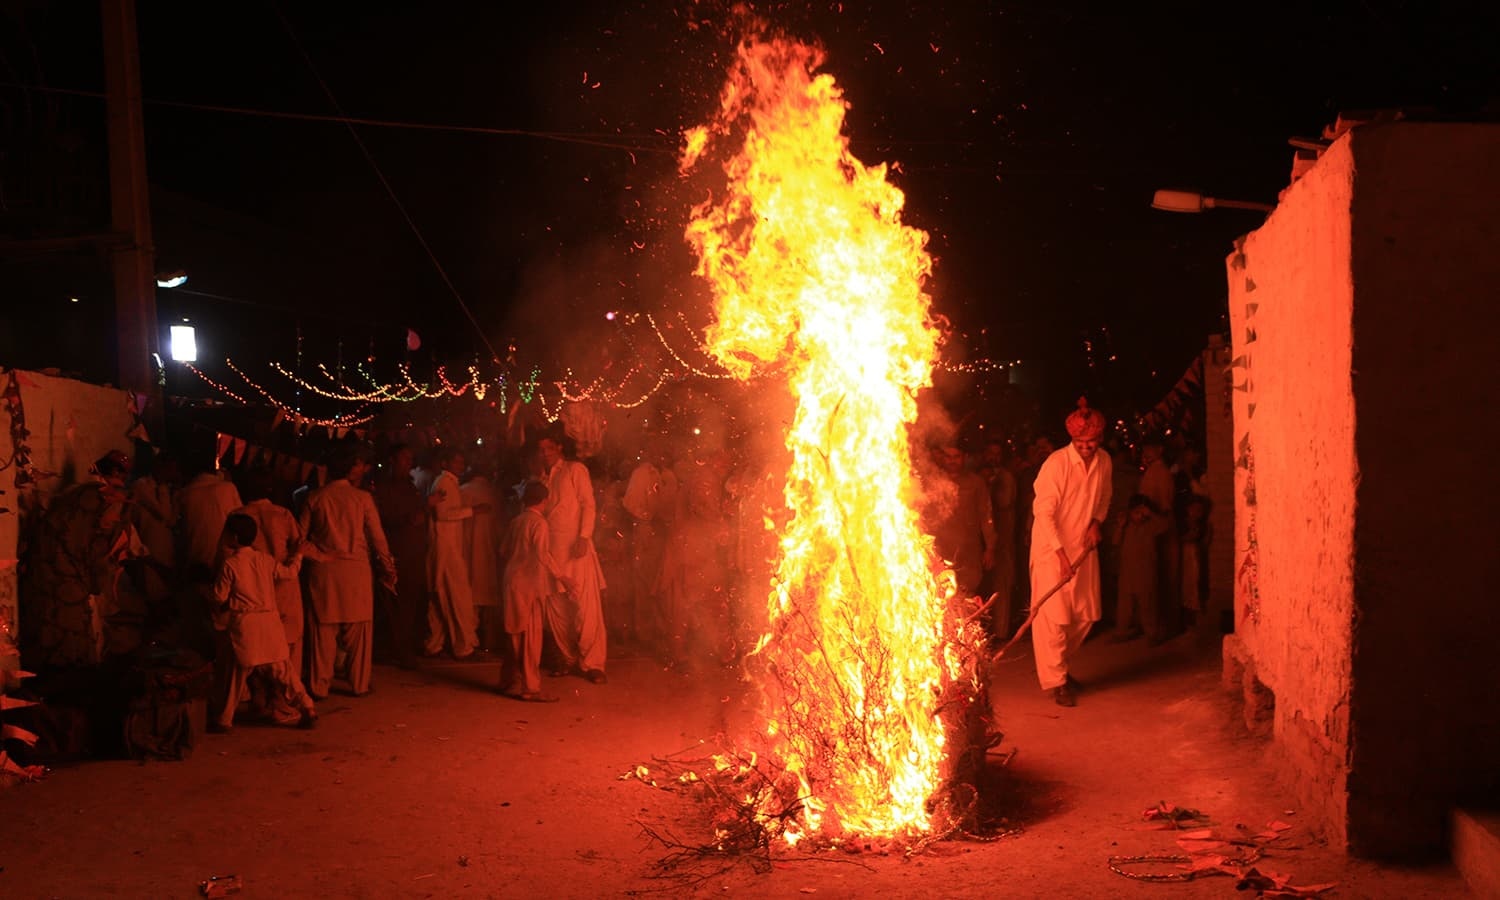 Fire on Holi is symbolic of victory of good over evil.